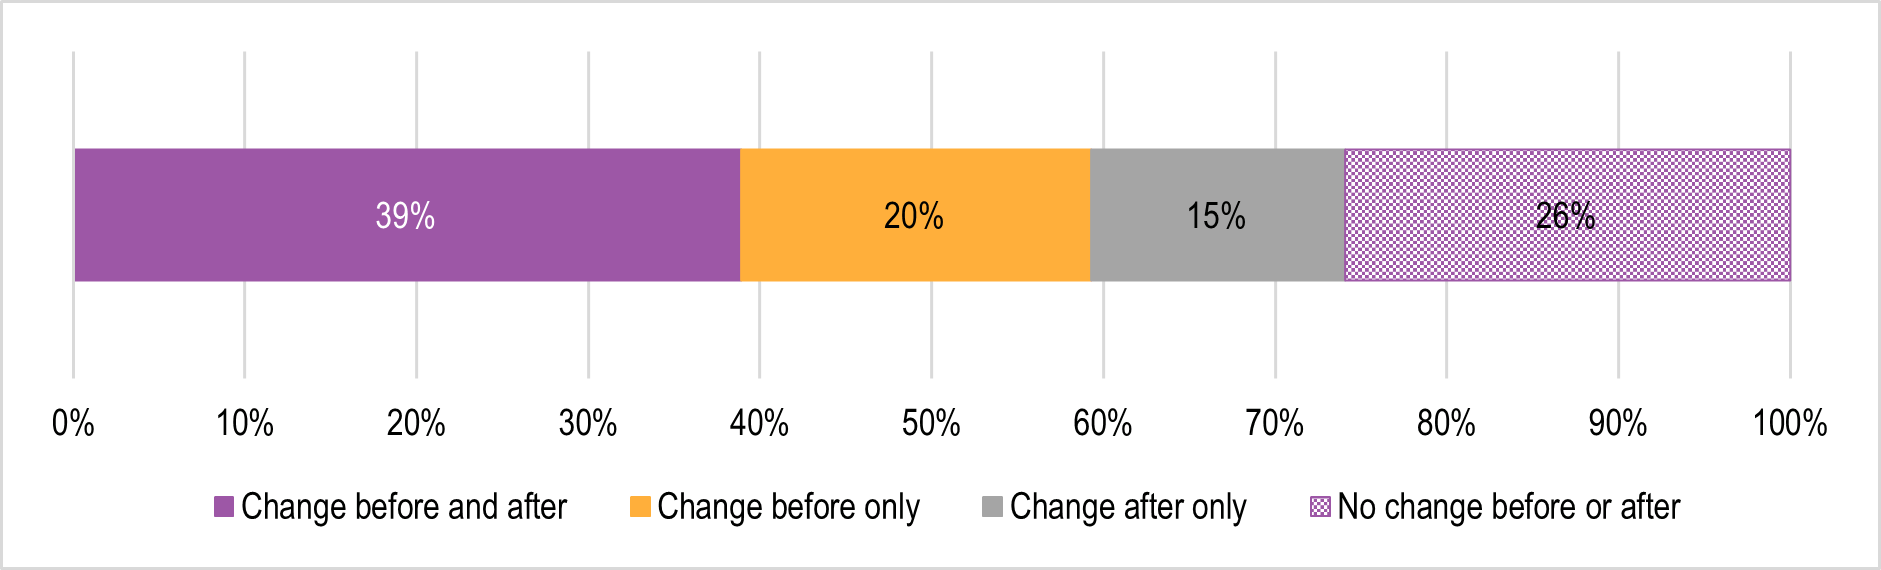 Figure 3.6 is a horizontal stacked bar chart showing the percentage of survey respondents who indicated there were changes to organisational recordkeeping practices before the implementation of the CIS Scheme; after the implementation of the Scheme; both before and after implementation; or no changes, either before or after implementation.